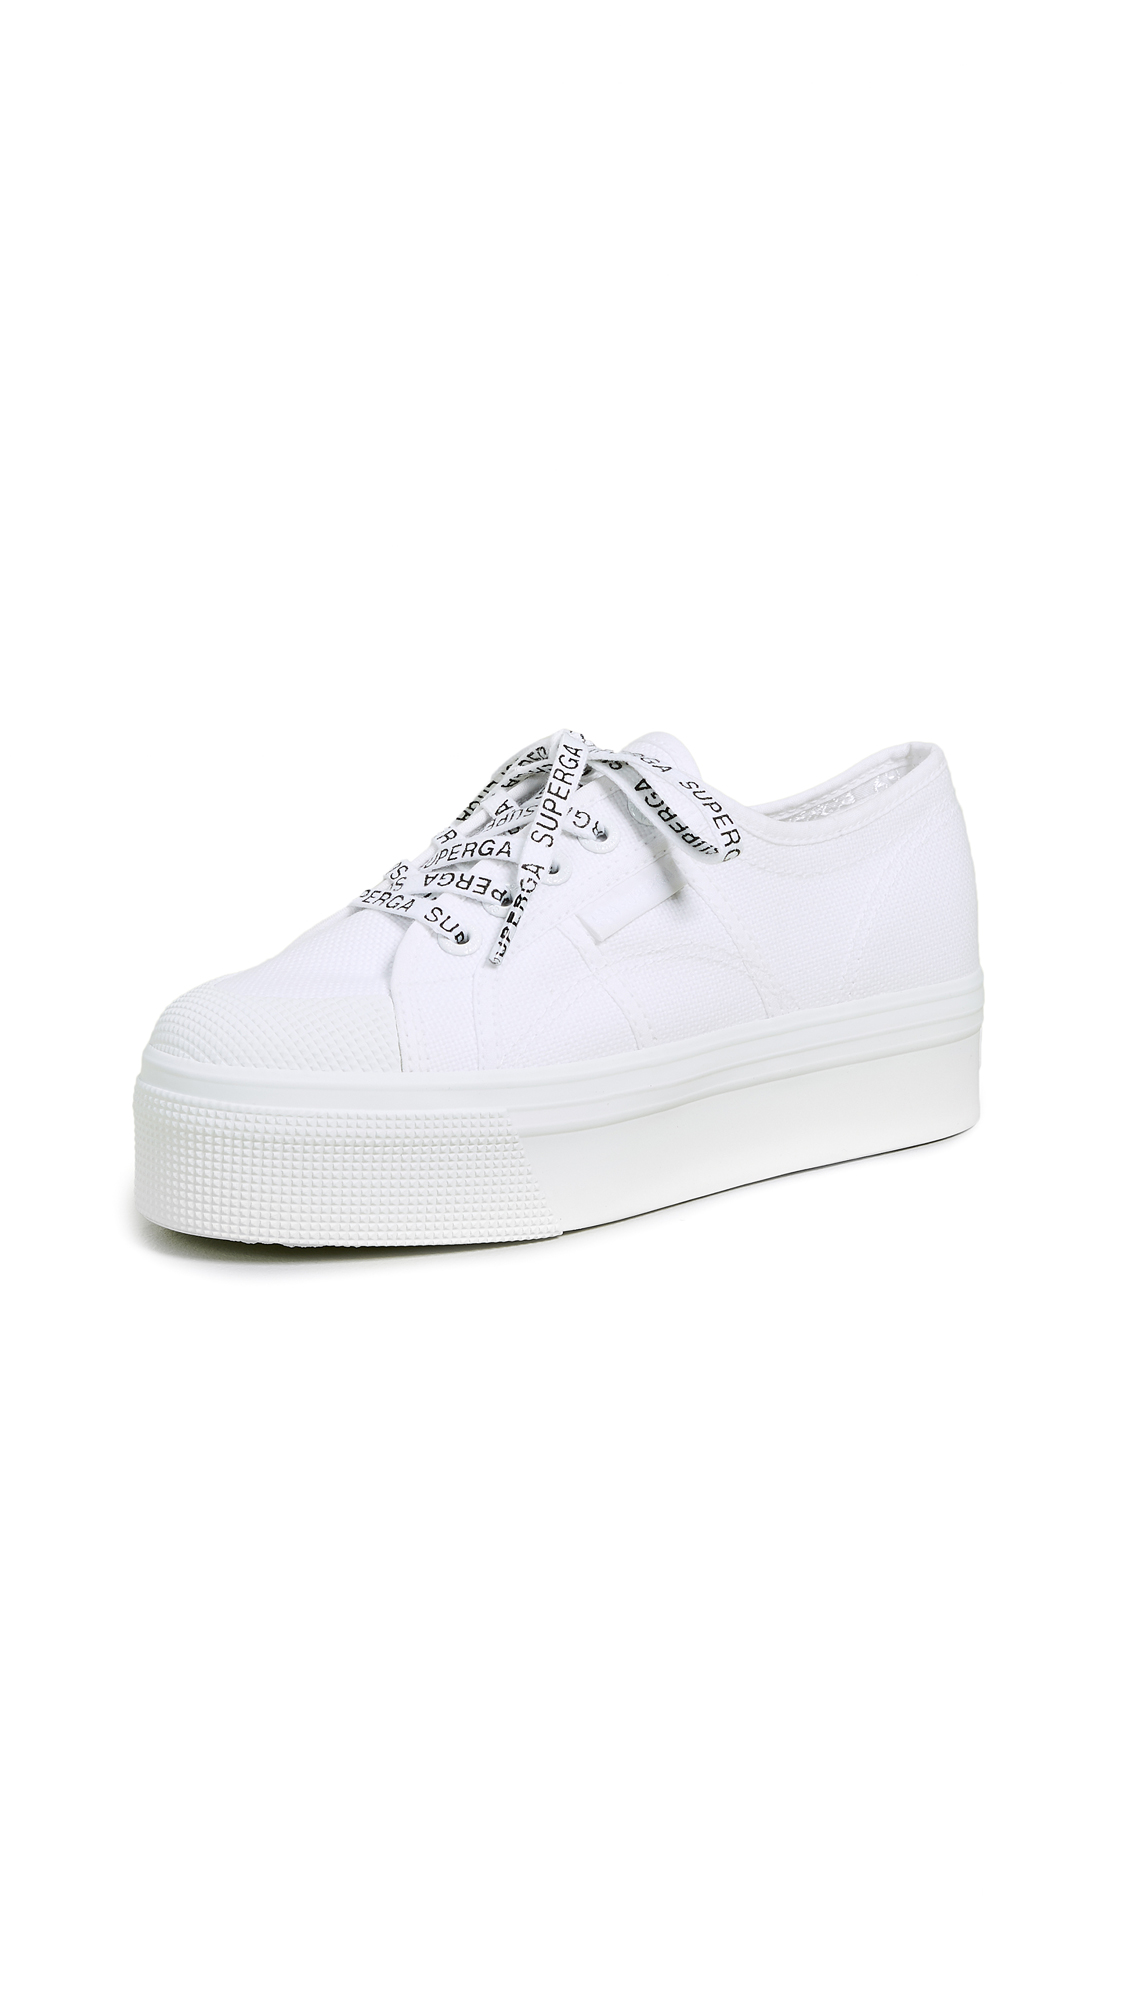 Superga White Out Package Platform Sneakers - White/White